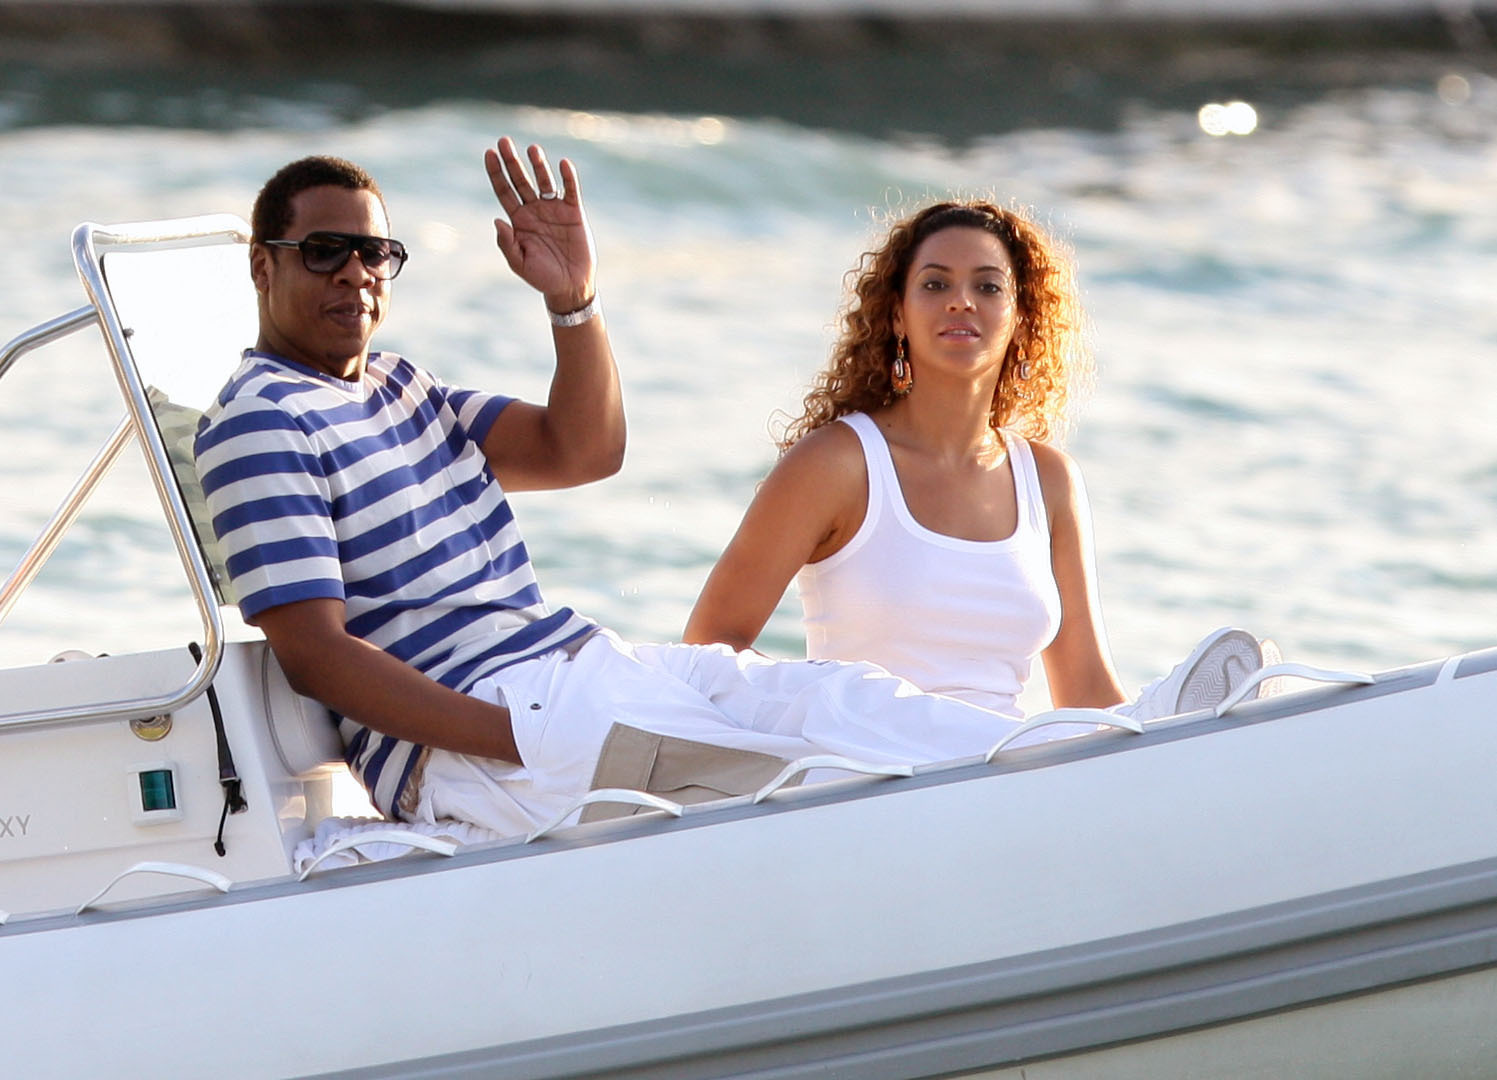 http://www.upscaleswagger.com/wp-content/uploads/2009/01/beyonce-and-jay-z-visit-st-barts.jpg